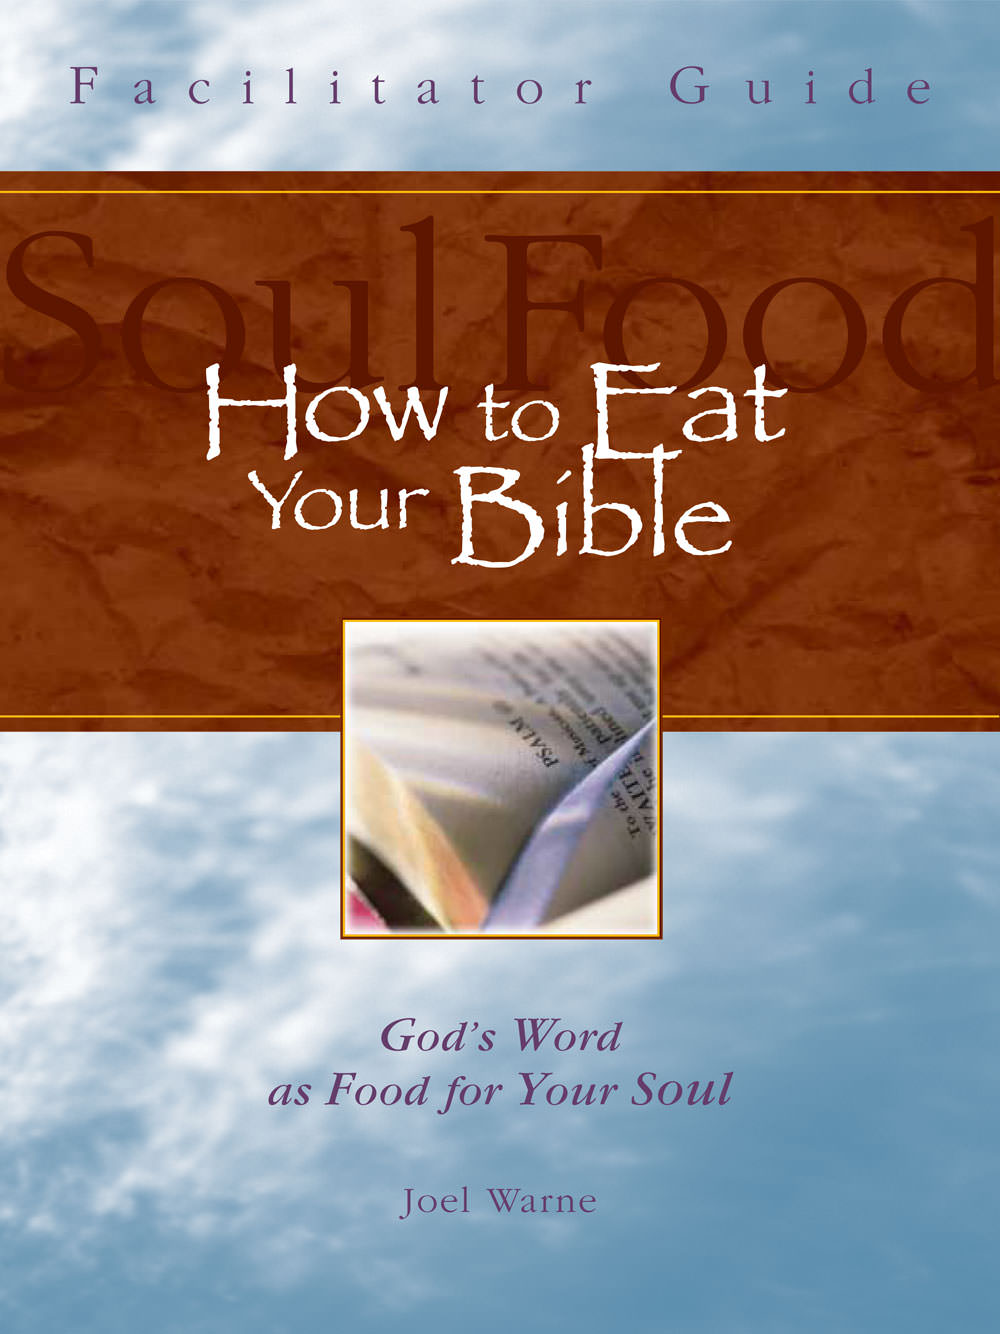 How-to-Eat-Your-Bible-Facilitator-Guide